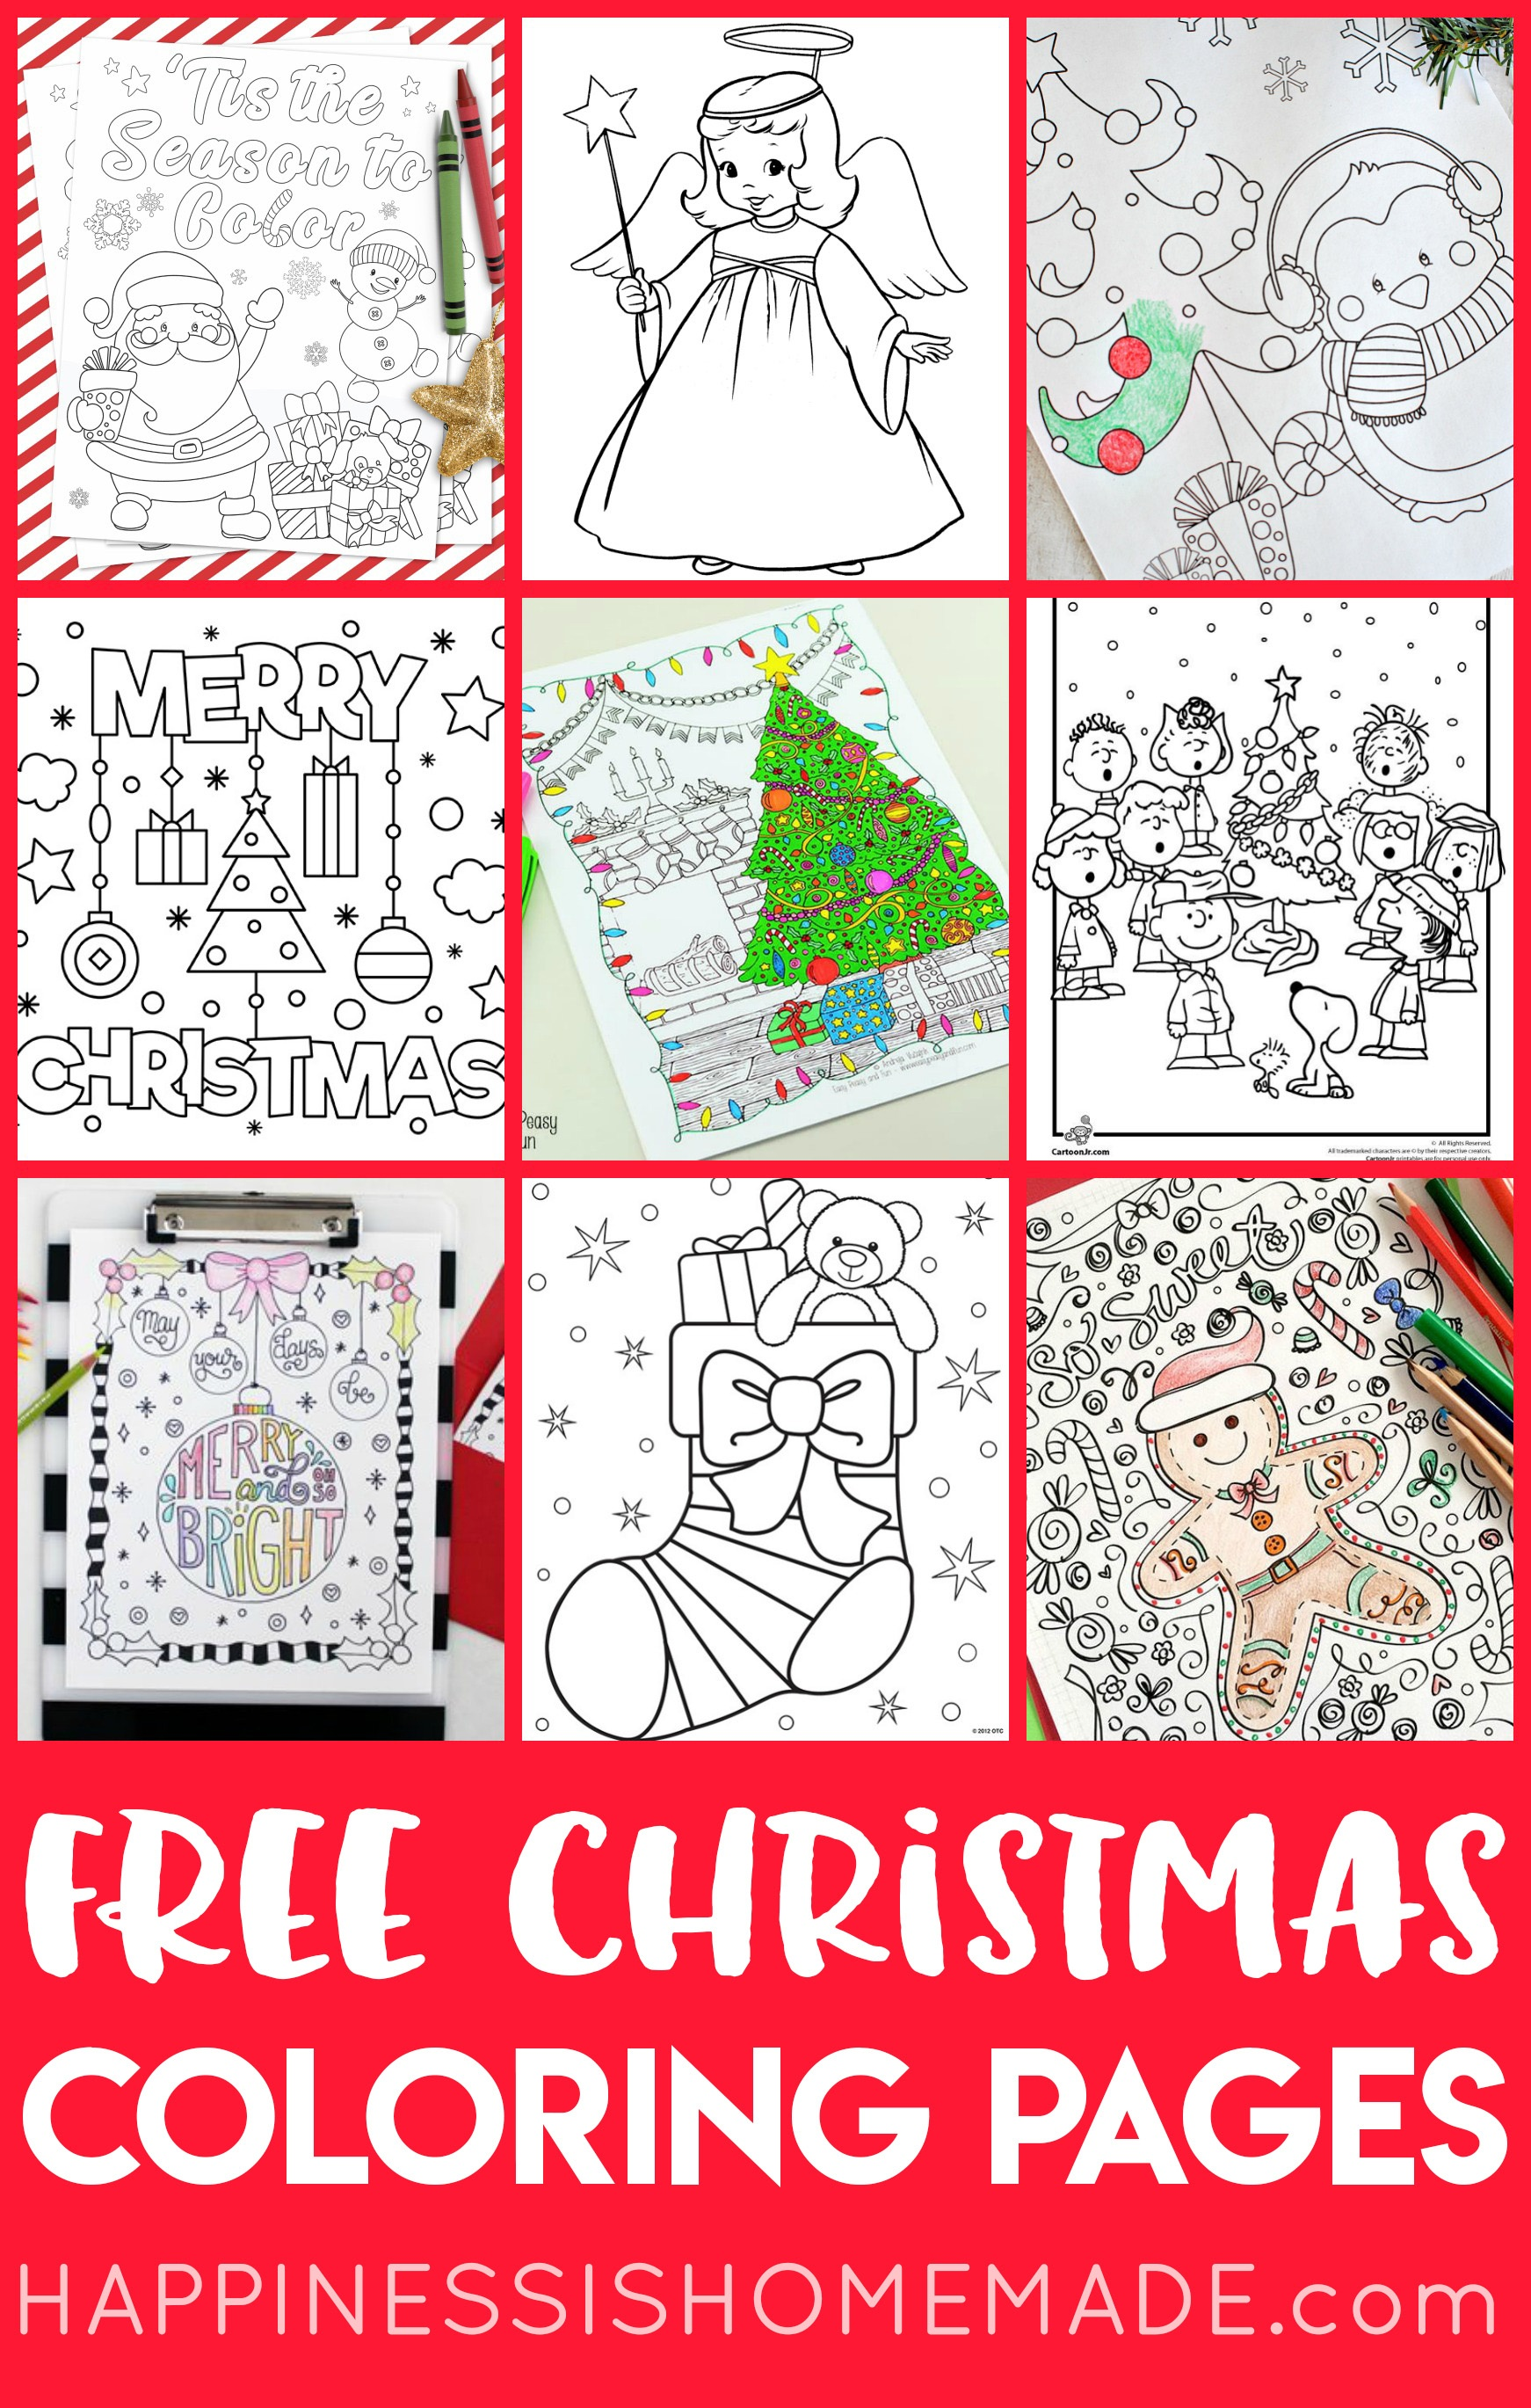 Free Christmas Coloring Pages For Adults And Kids - Happiness Is - Free Printable Christmas Art